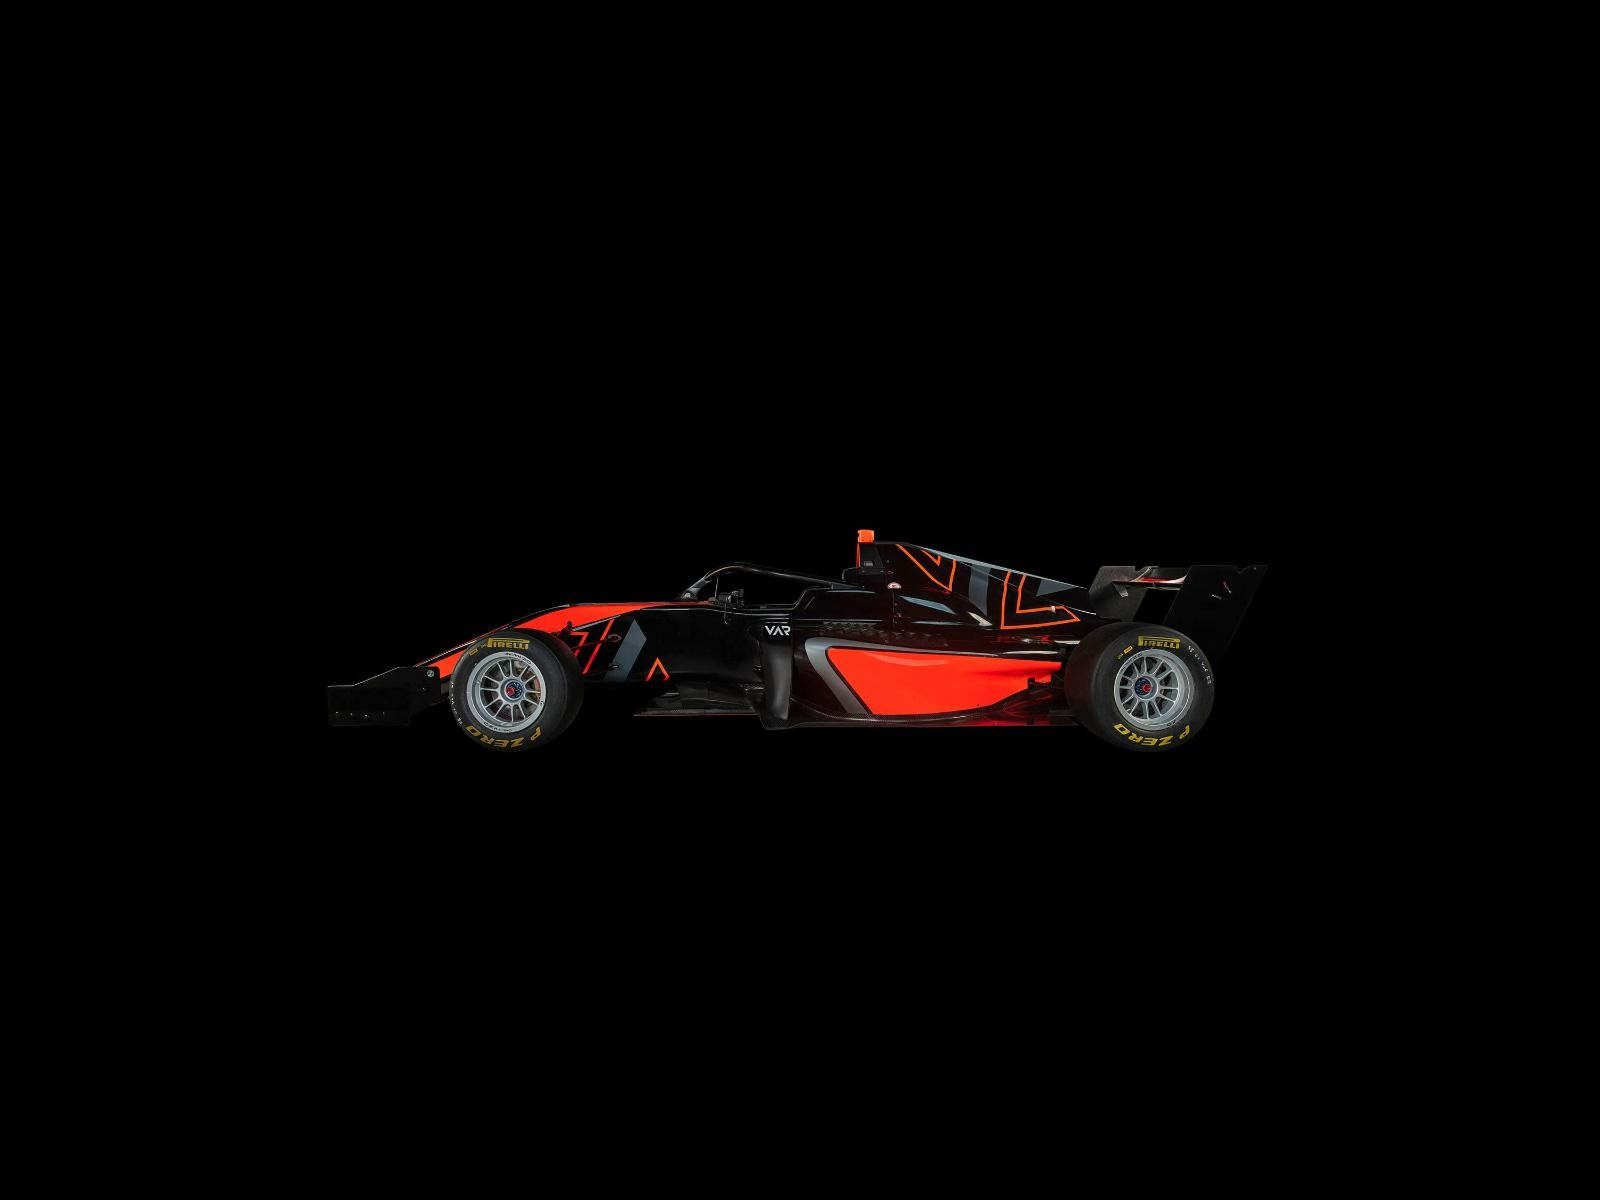 Sportauto's - Formule 3 - Lower side view - dark - Tienerkamer